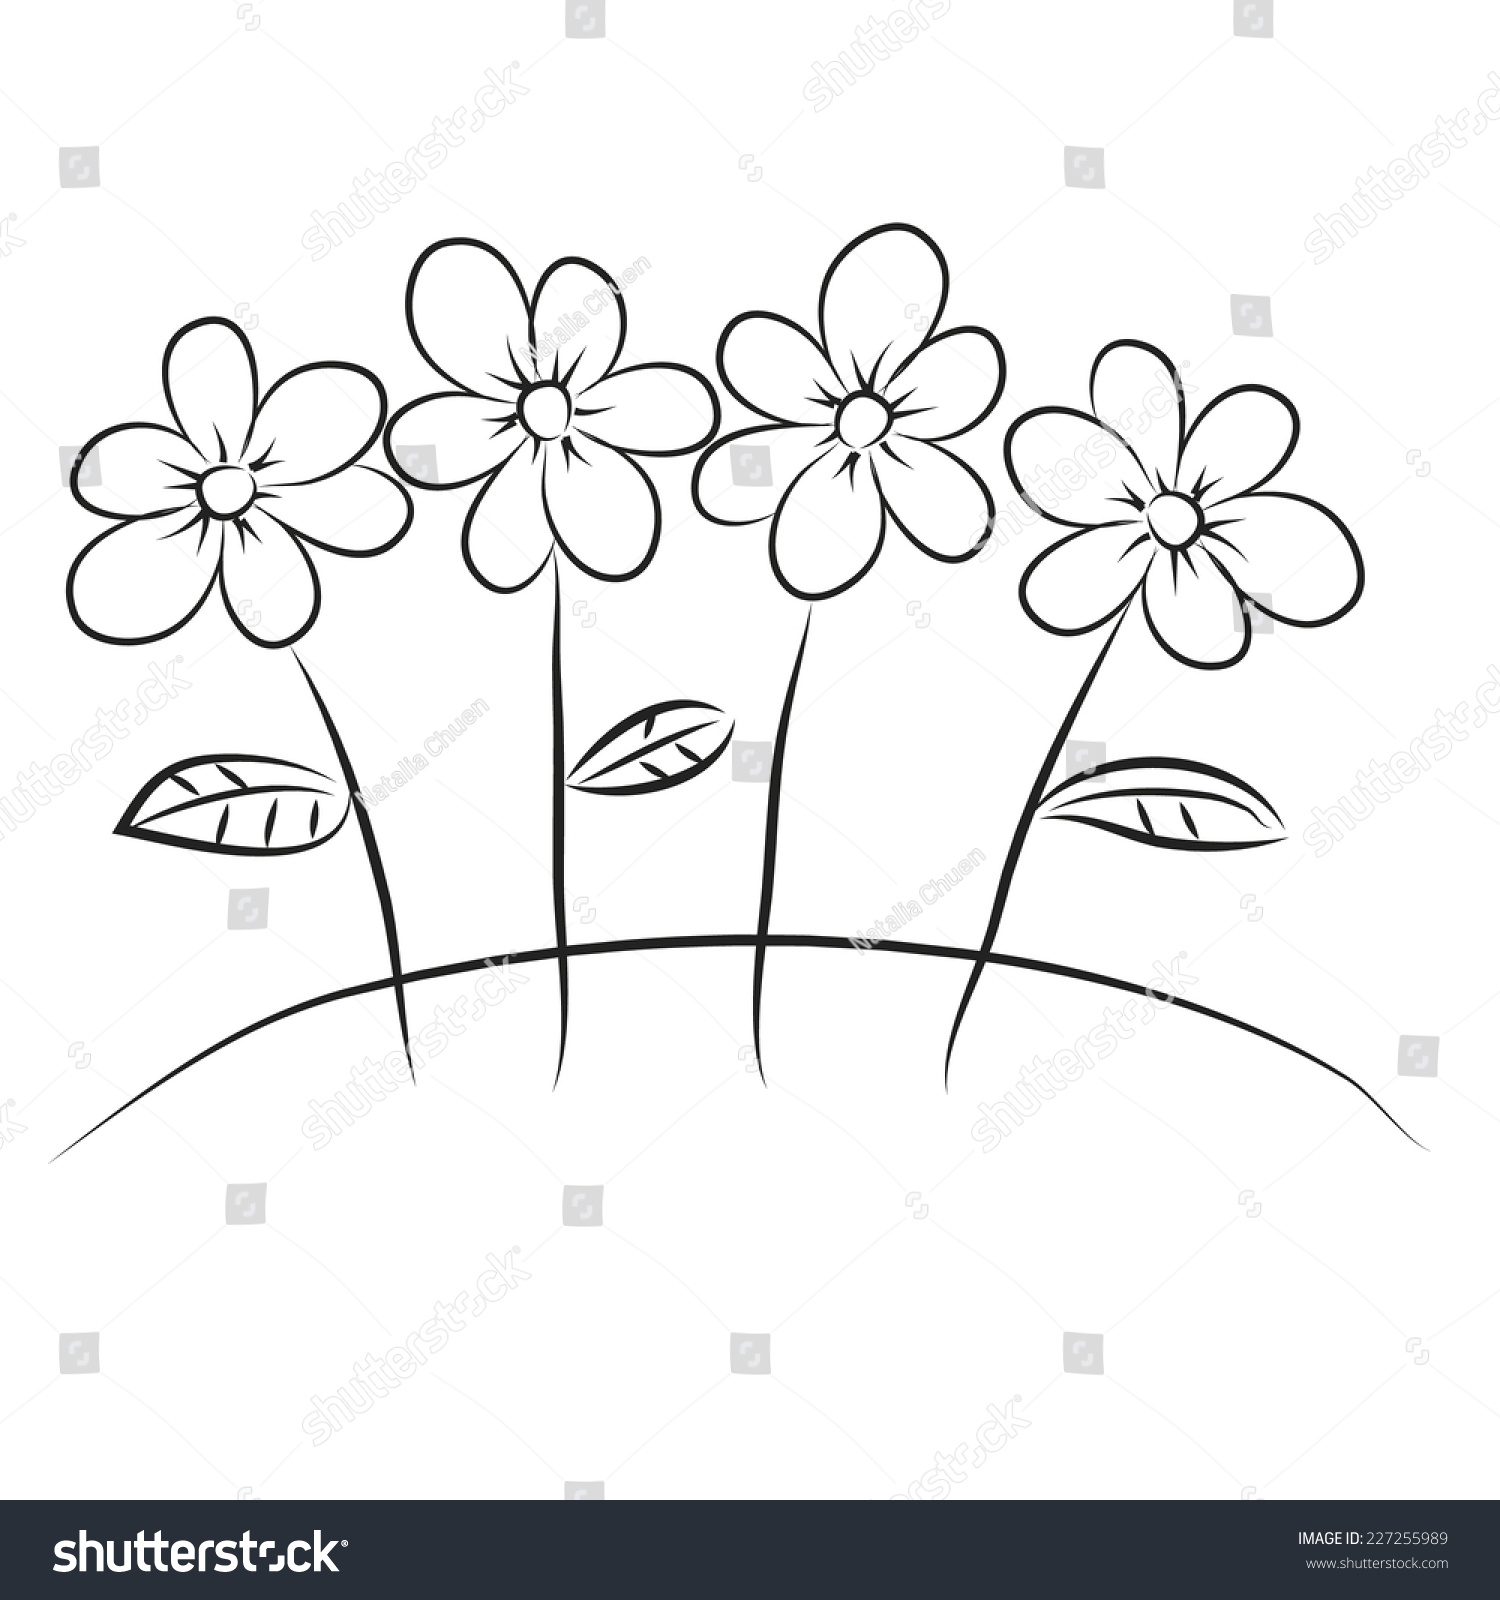 Black White Cartoon Flowers Vector Sketch Stock Vector Royalty Free